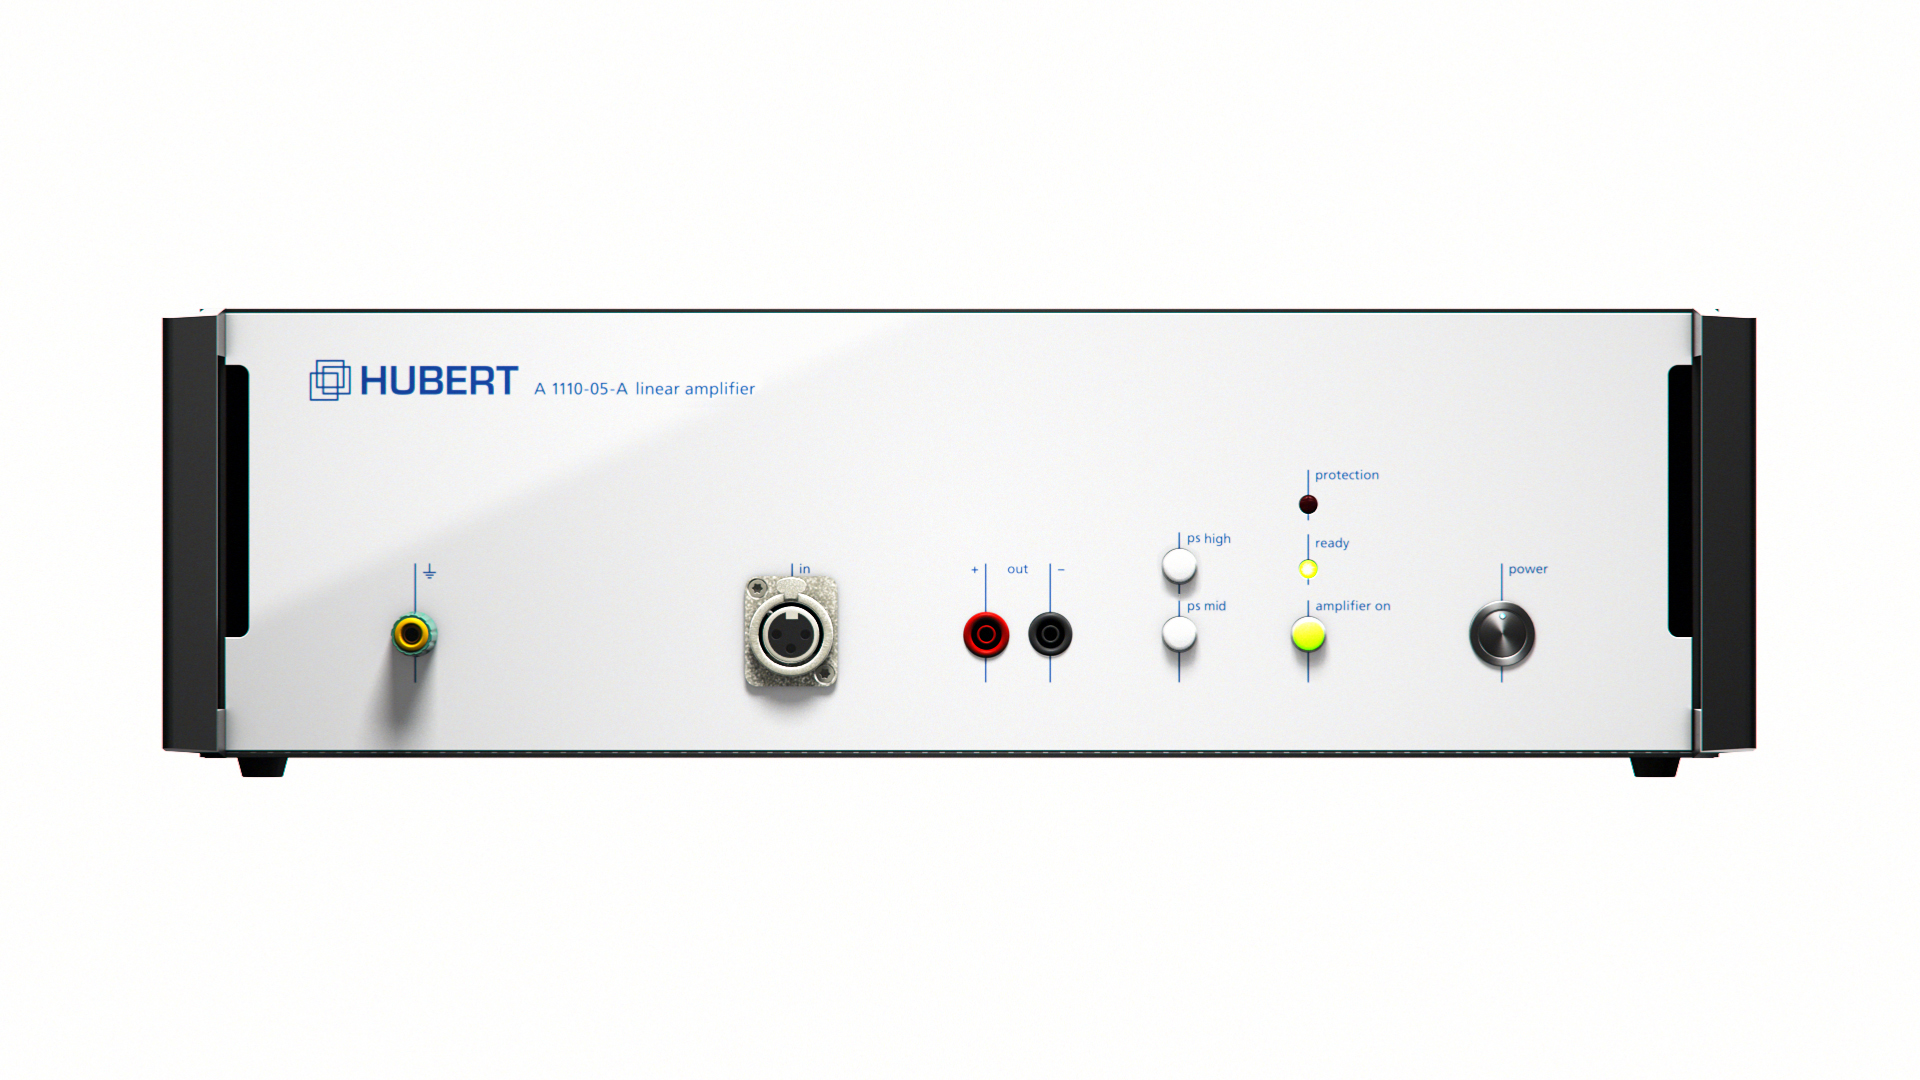 HUBERT A 1110-05-A linear amplifier